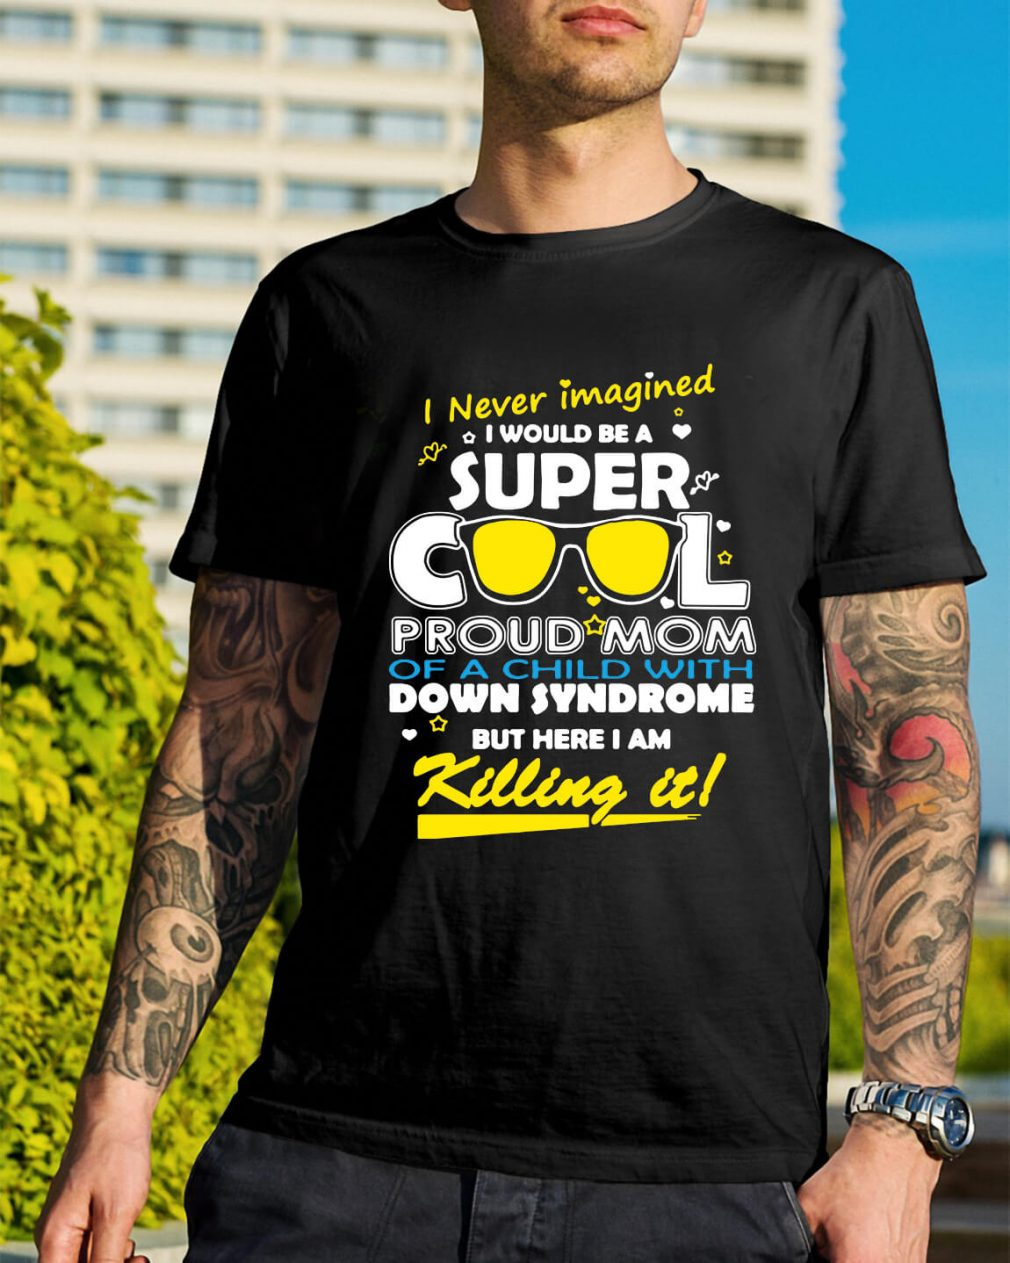 I never imagined I would be a super cool proud mom shirt